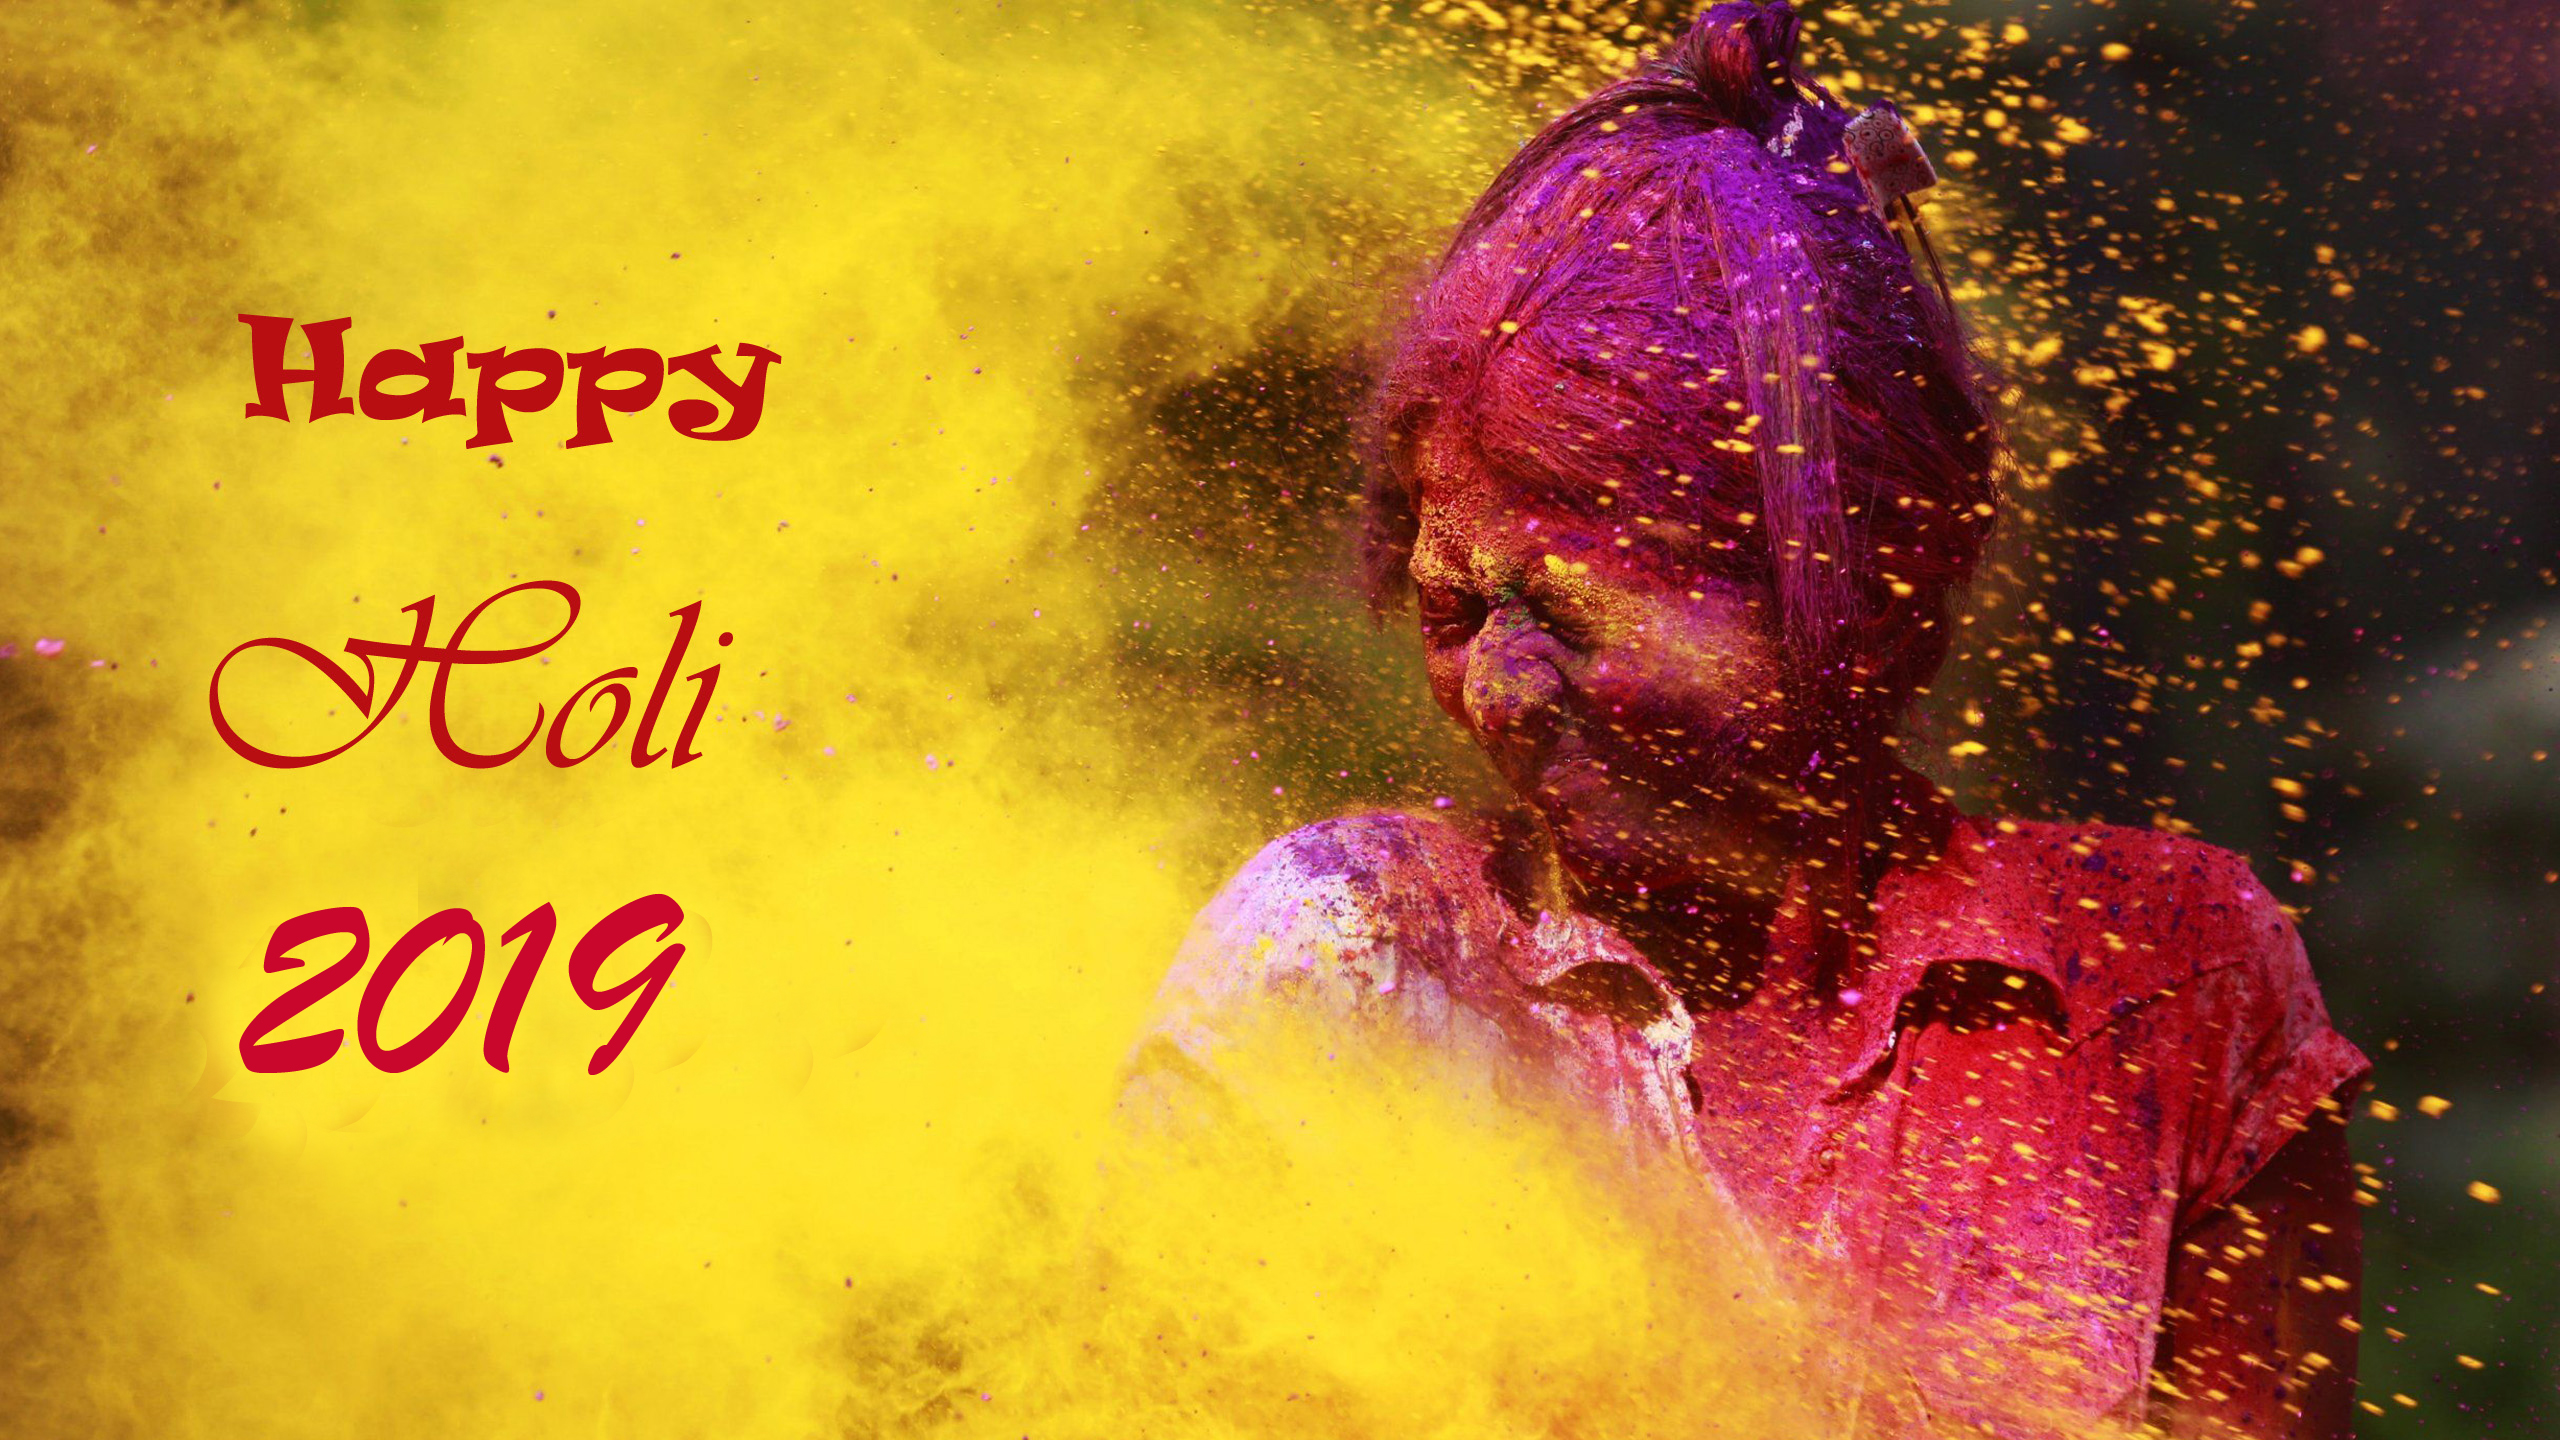 Greeting Card for Happy Holi 2018 HD Wallpapers